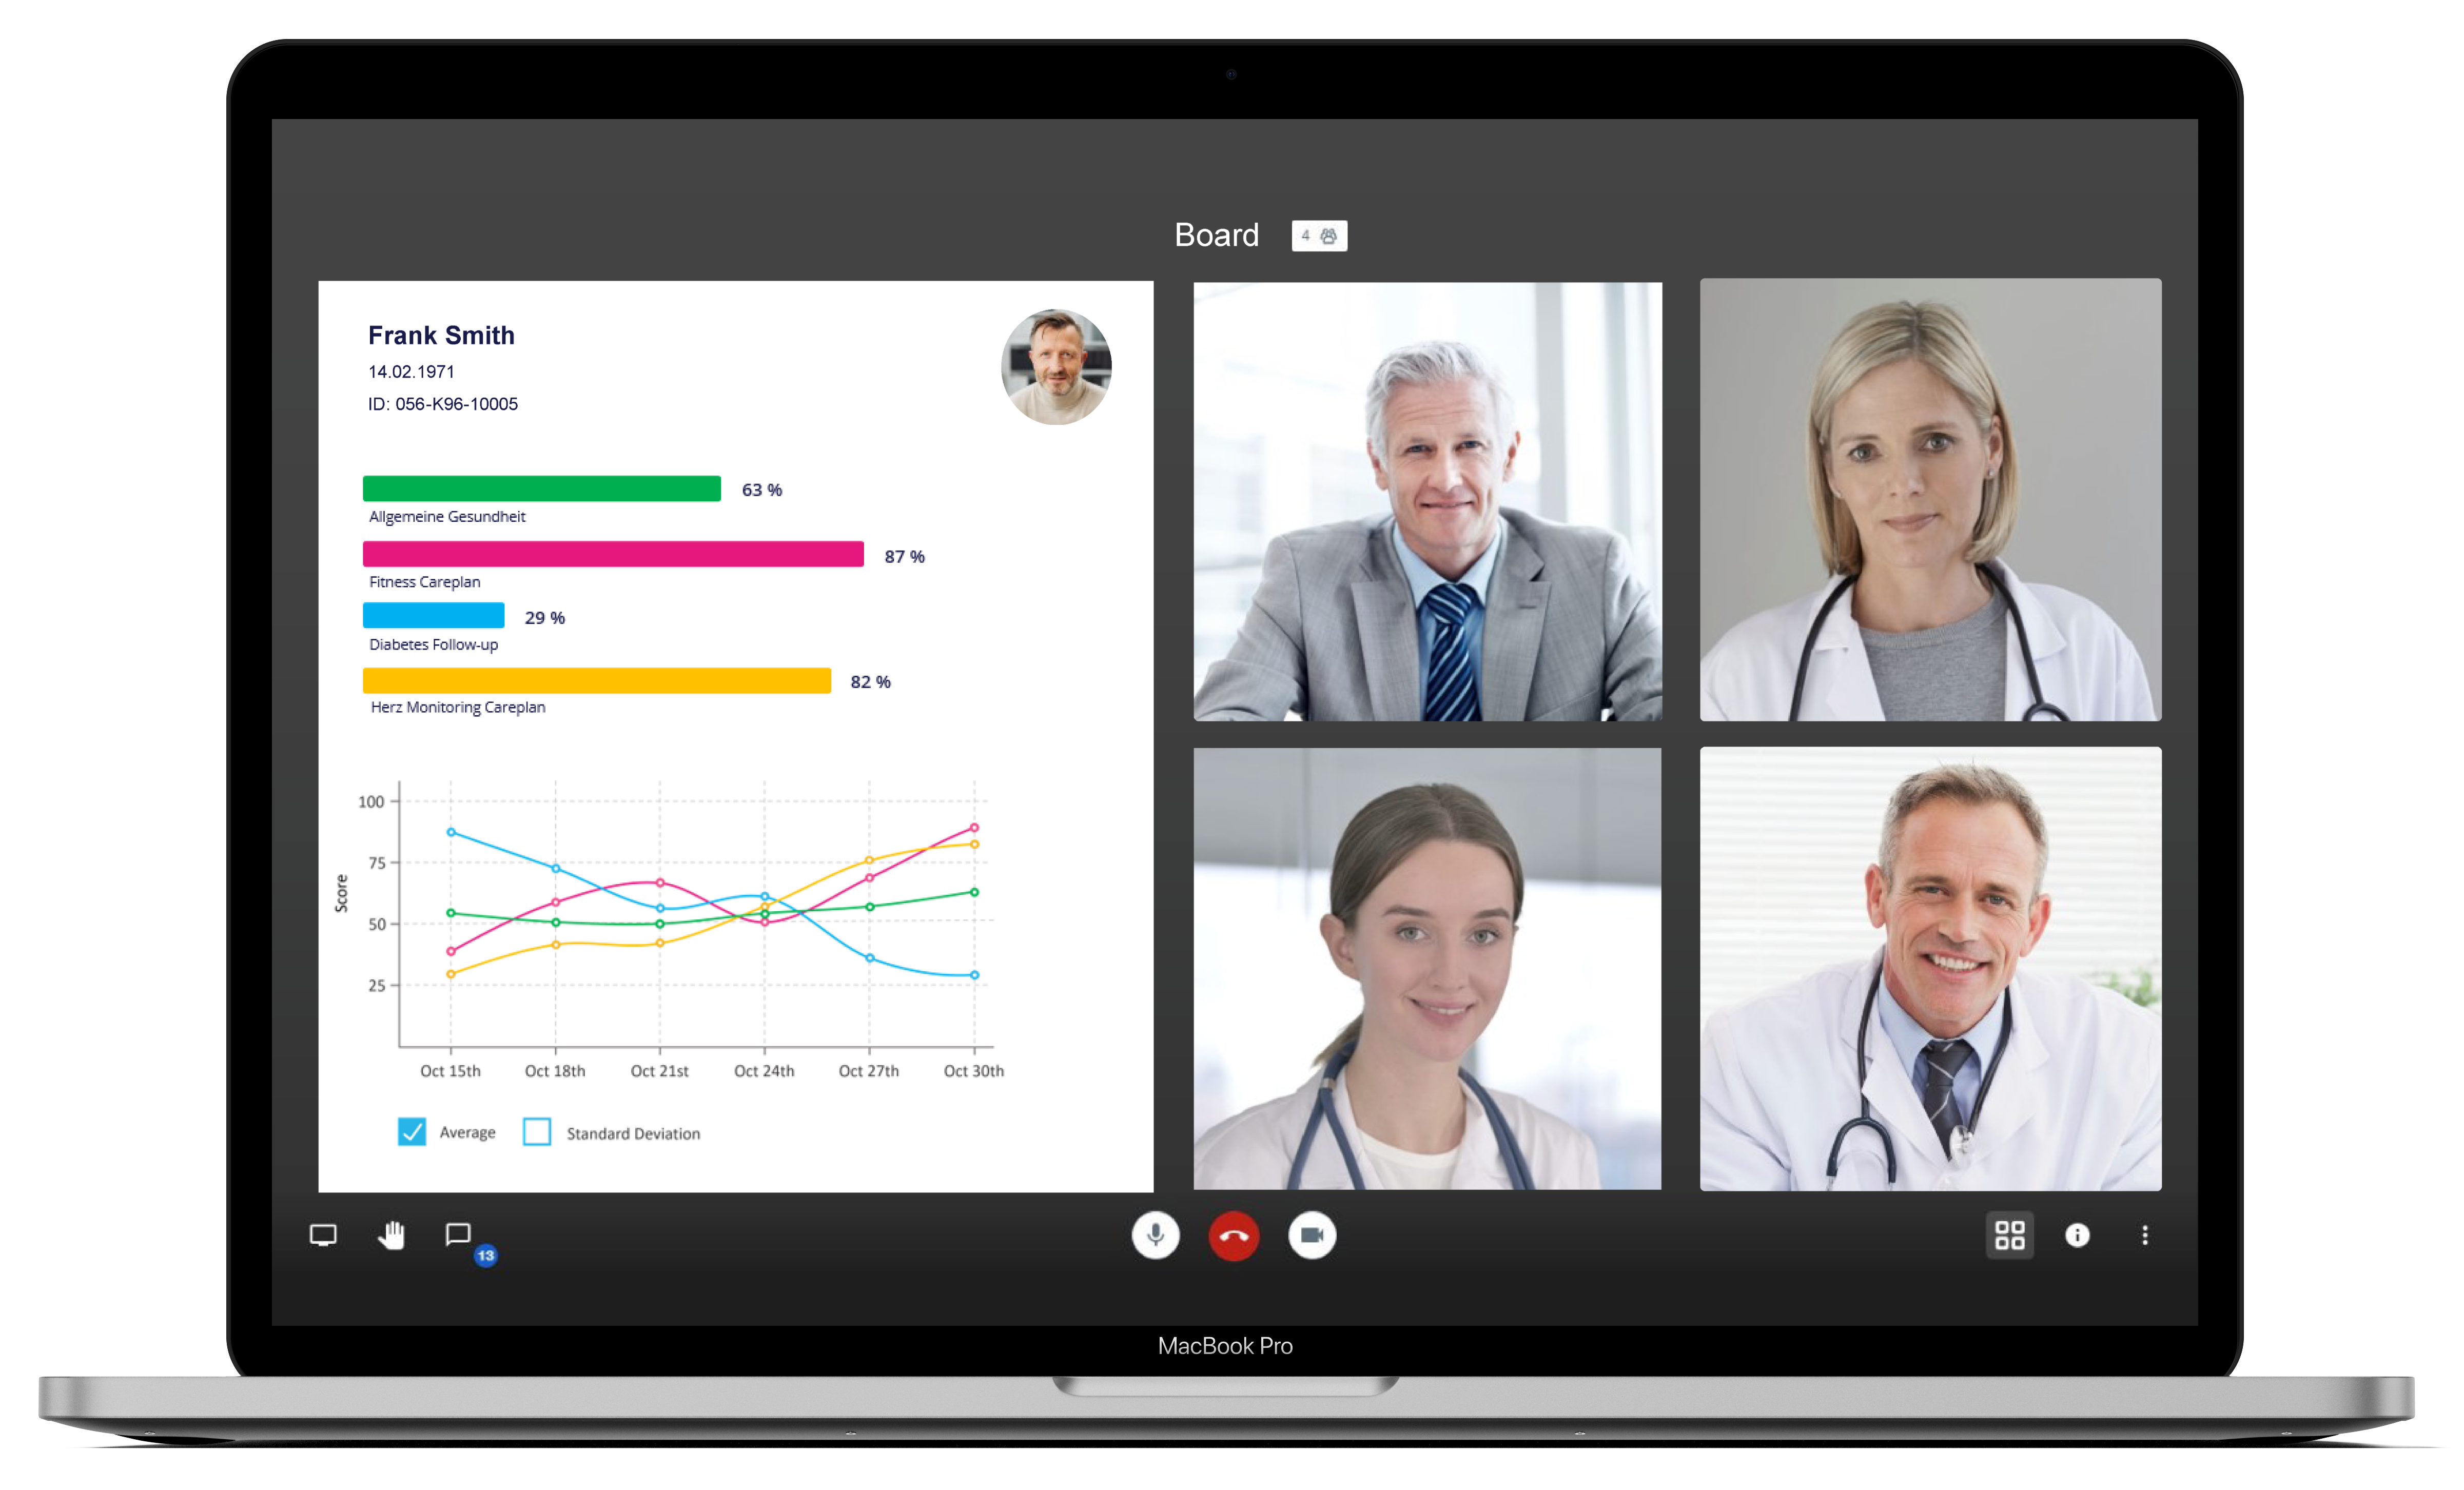 A screenshot of the myoncare app showing a video conference with various doctors